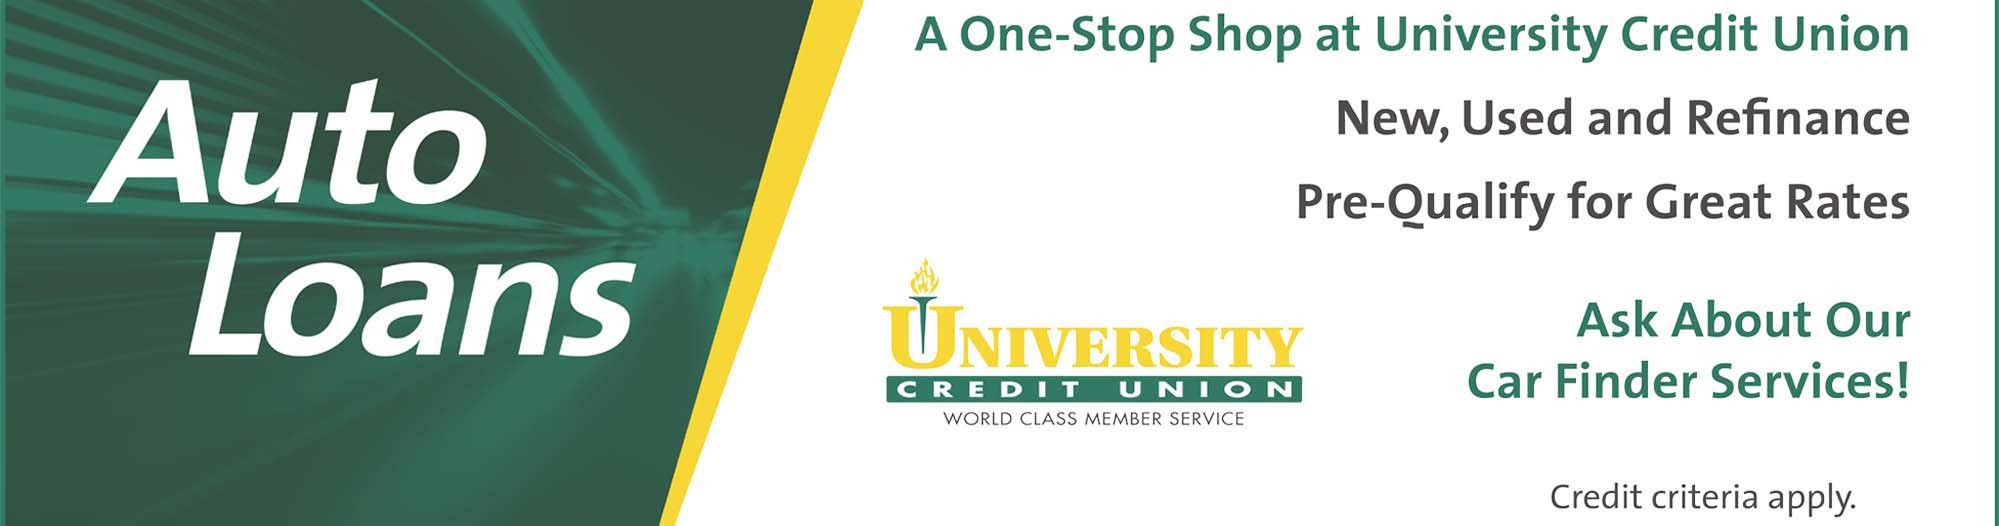 New University Credit Union Car Finder Service